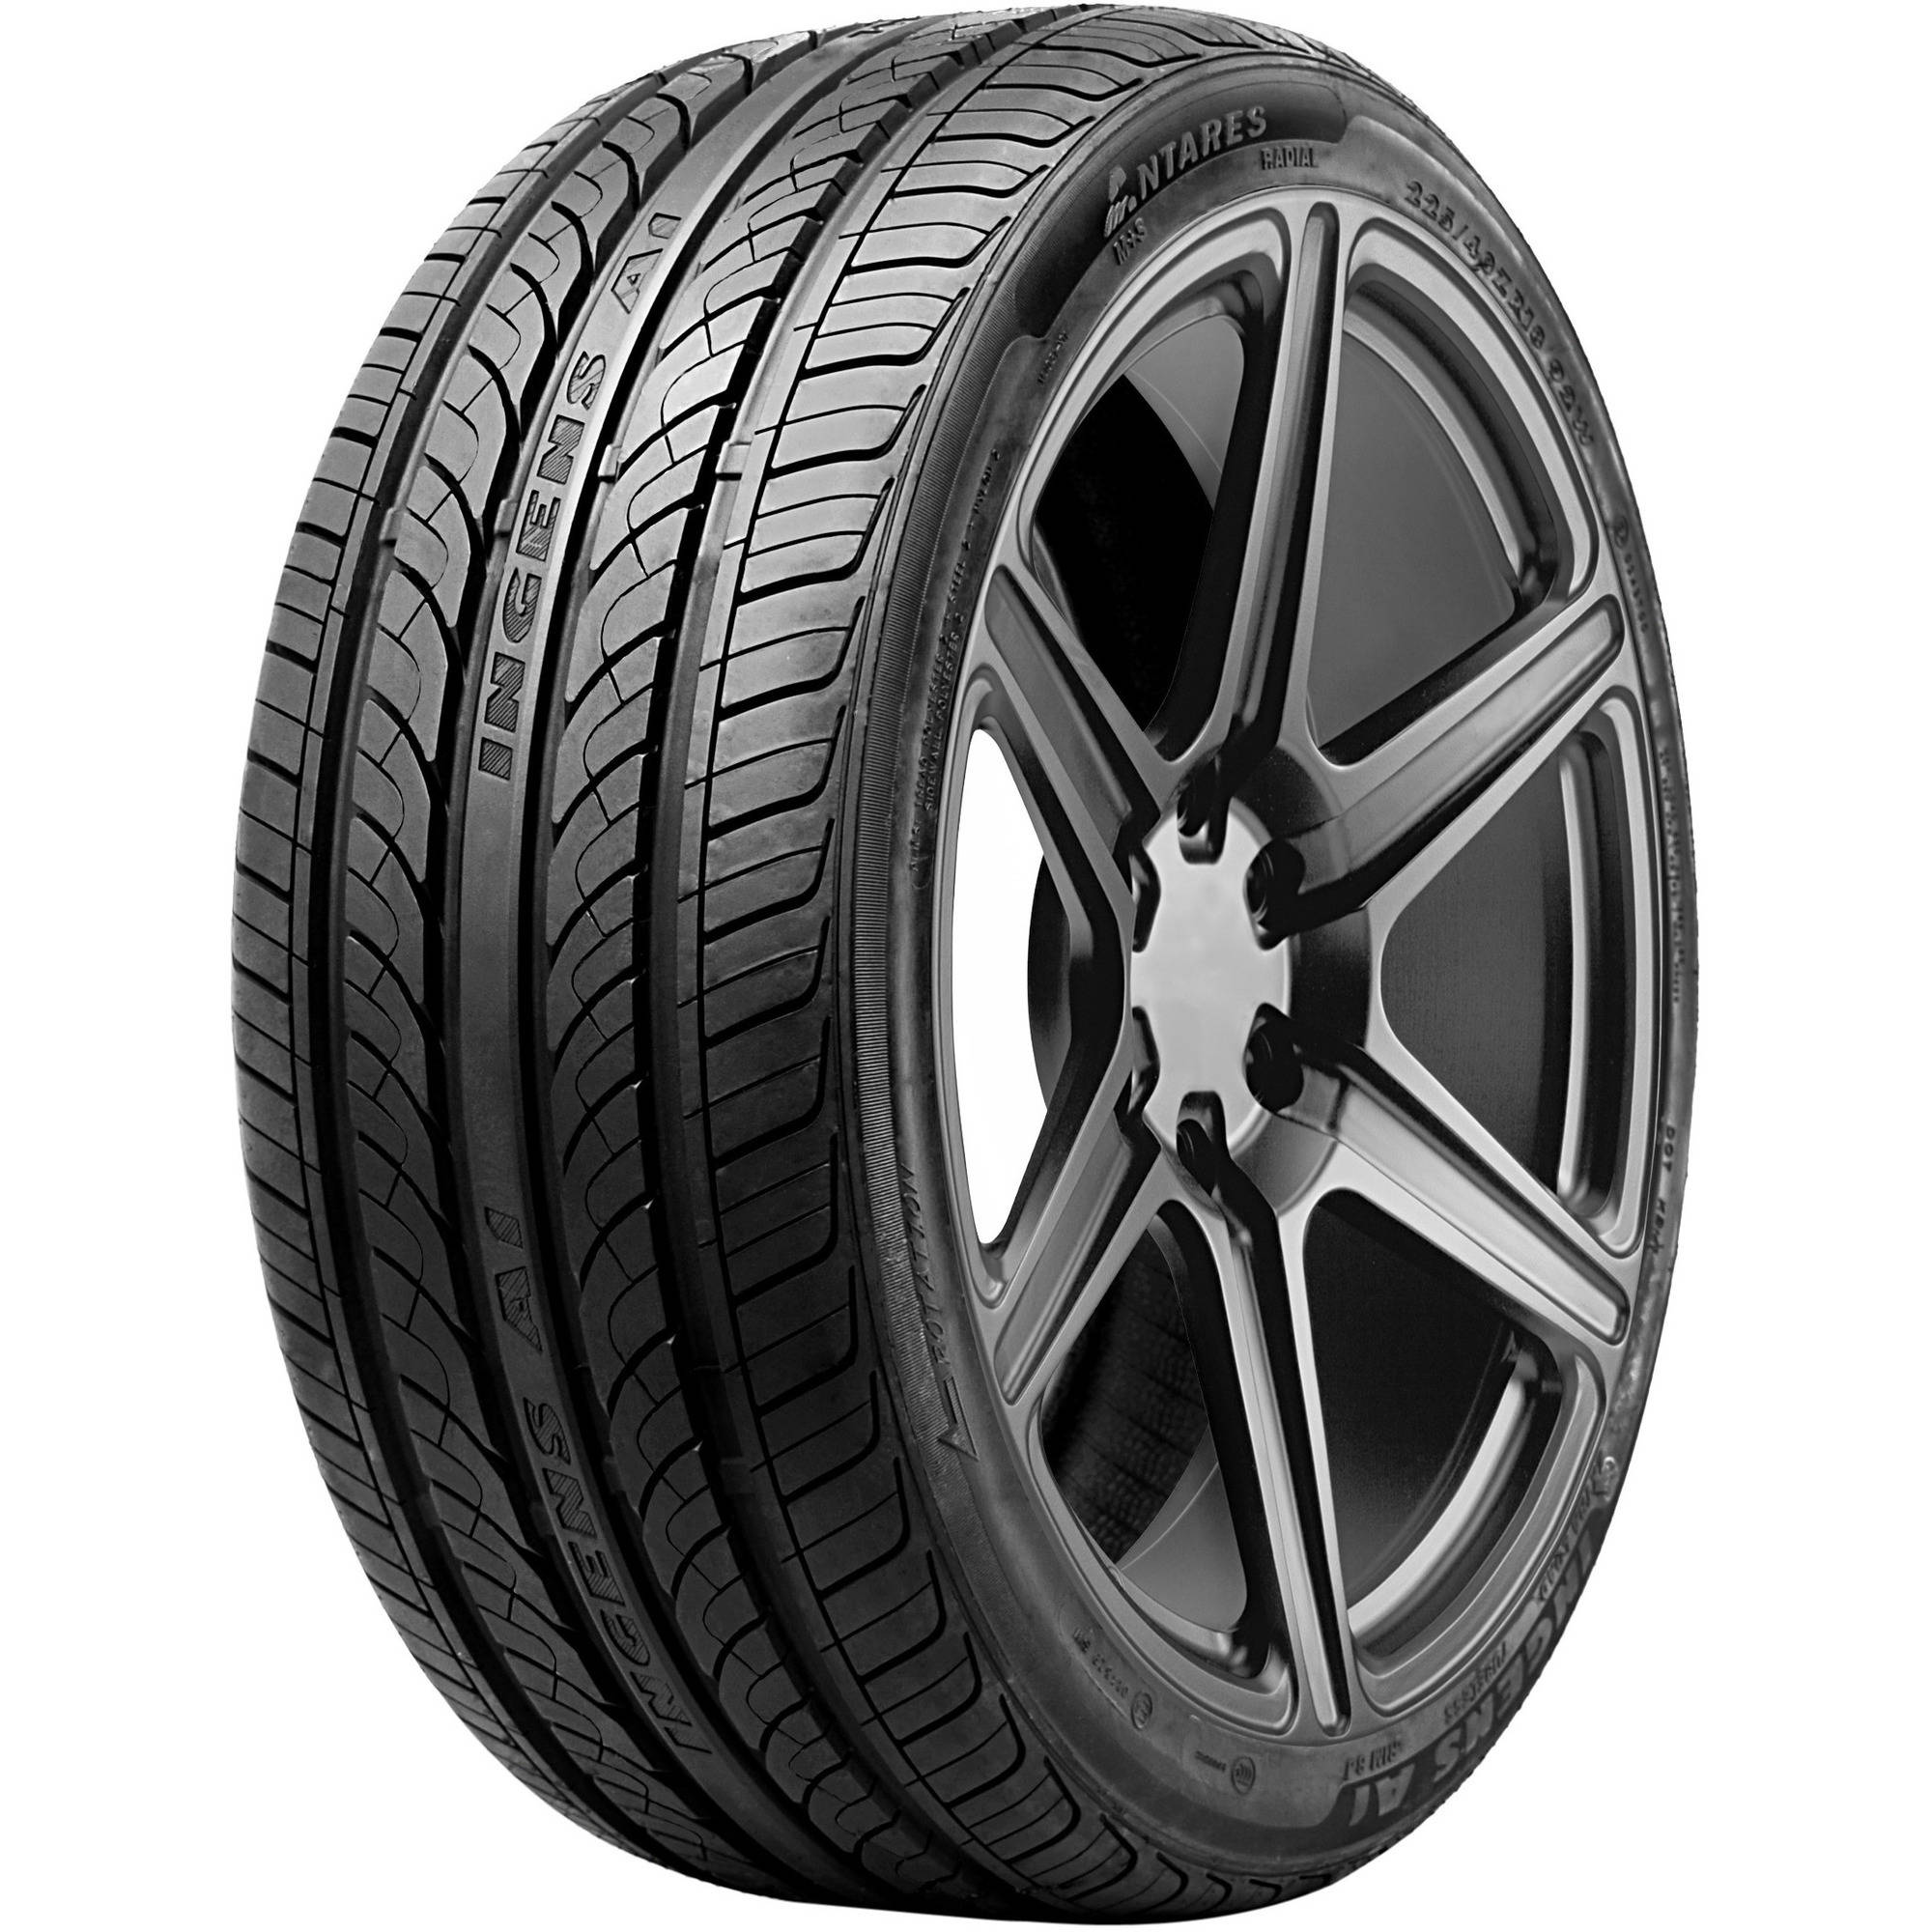 Antares Ingens A1 All-Season Tire - 225/45R17 94W